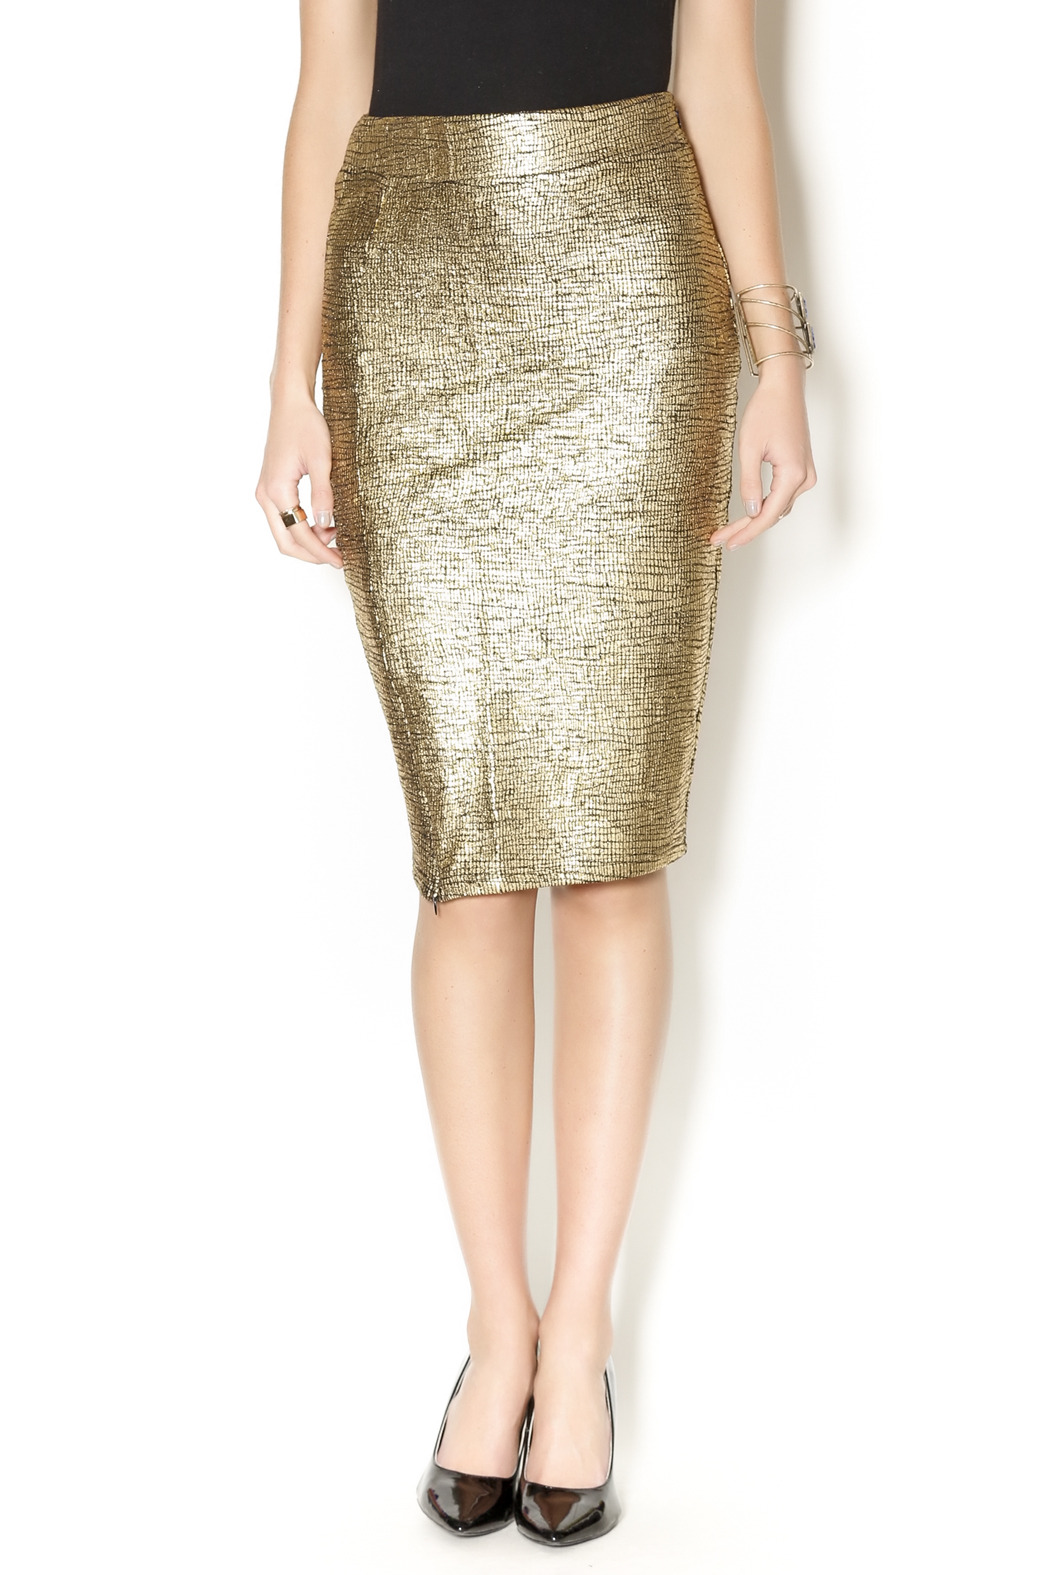 Metallic Gold Pencil Skirt — Shoptiques